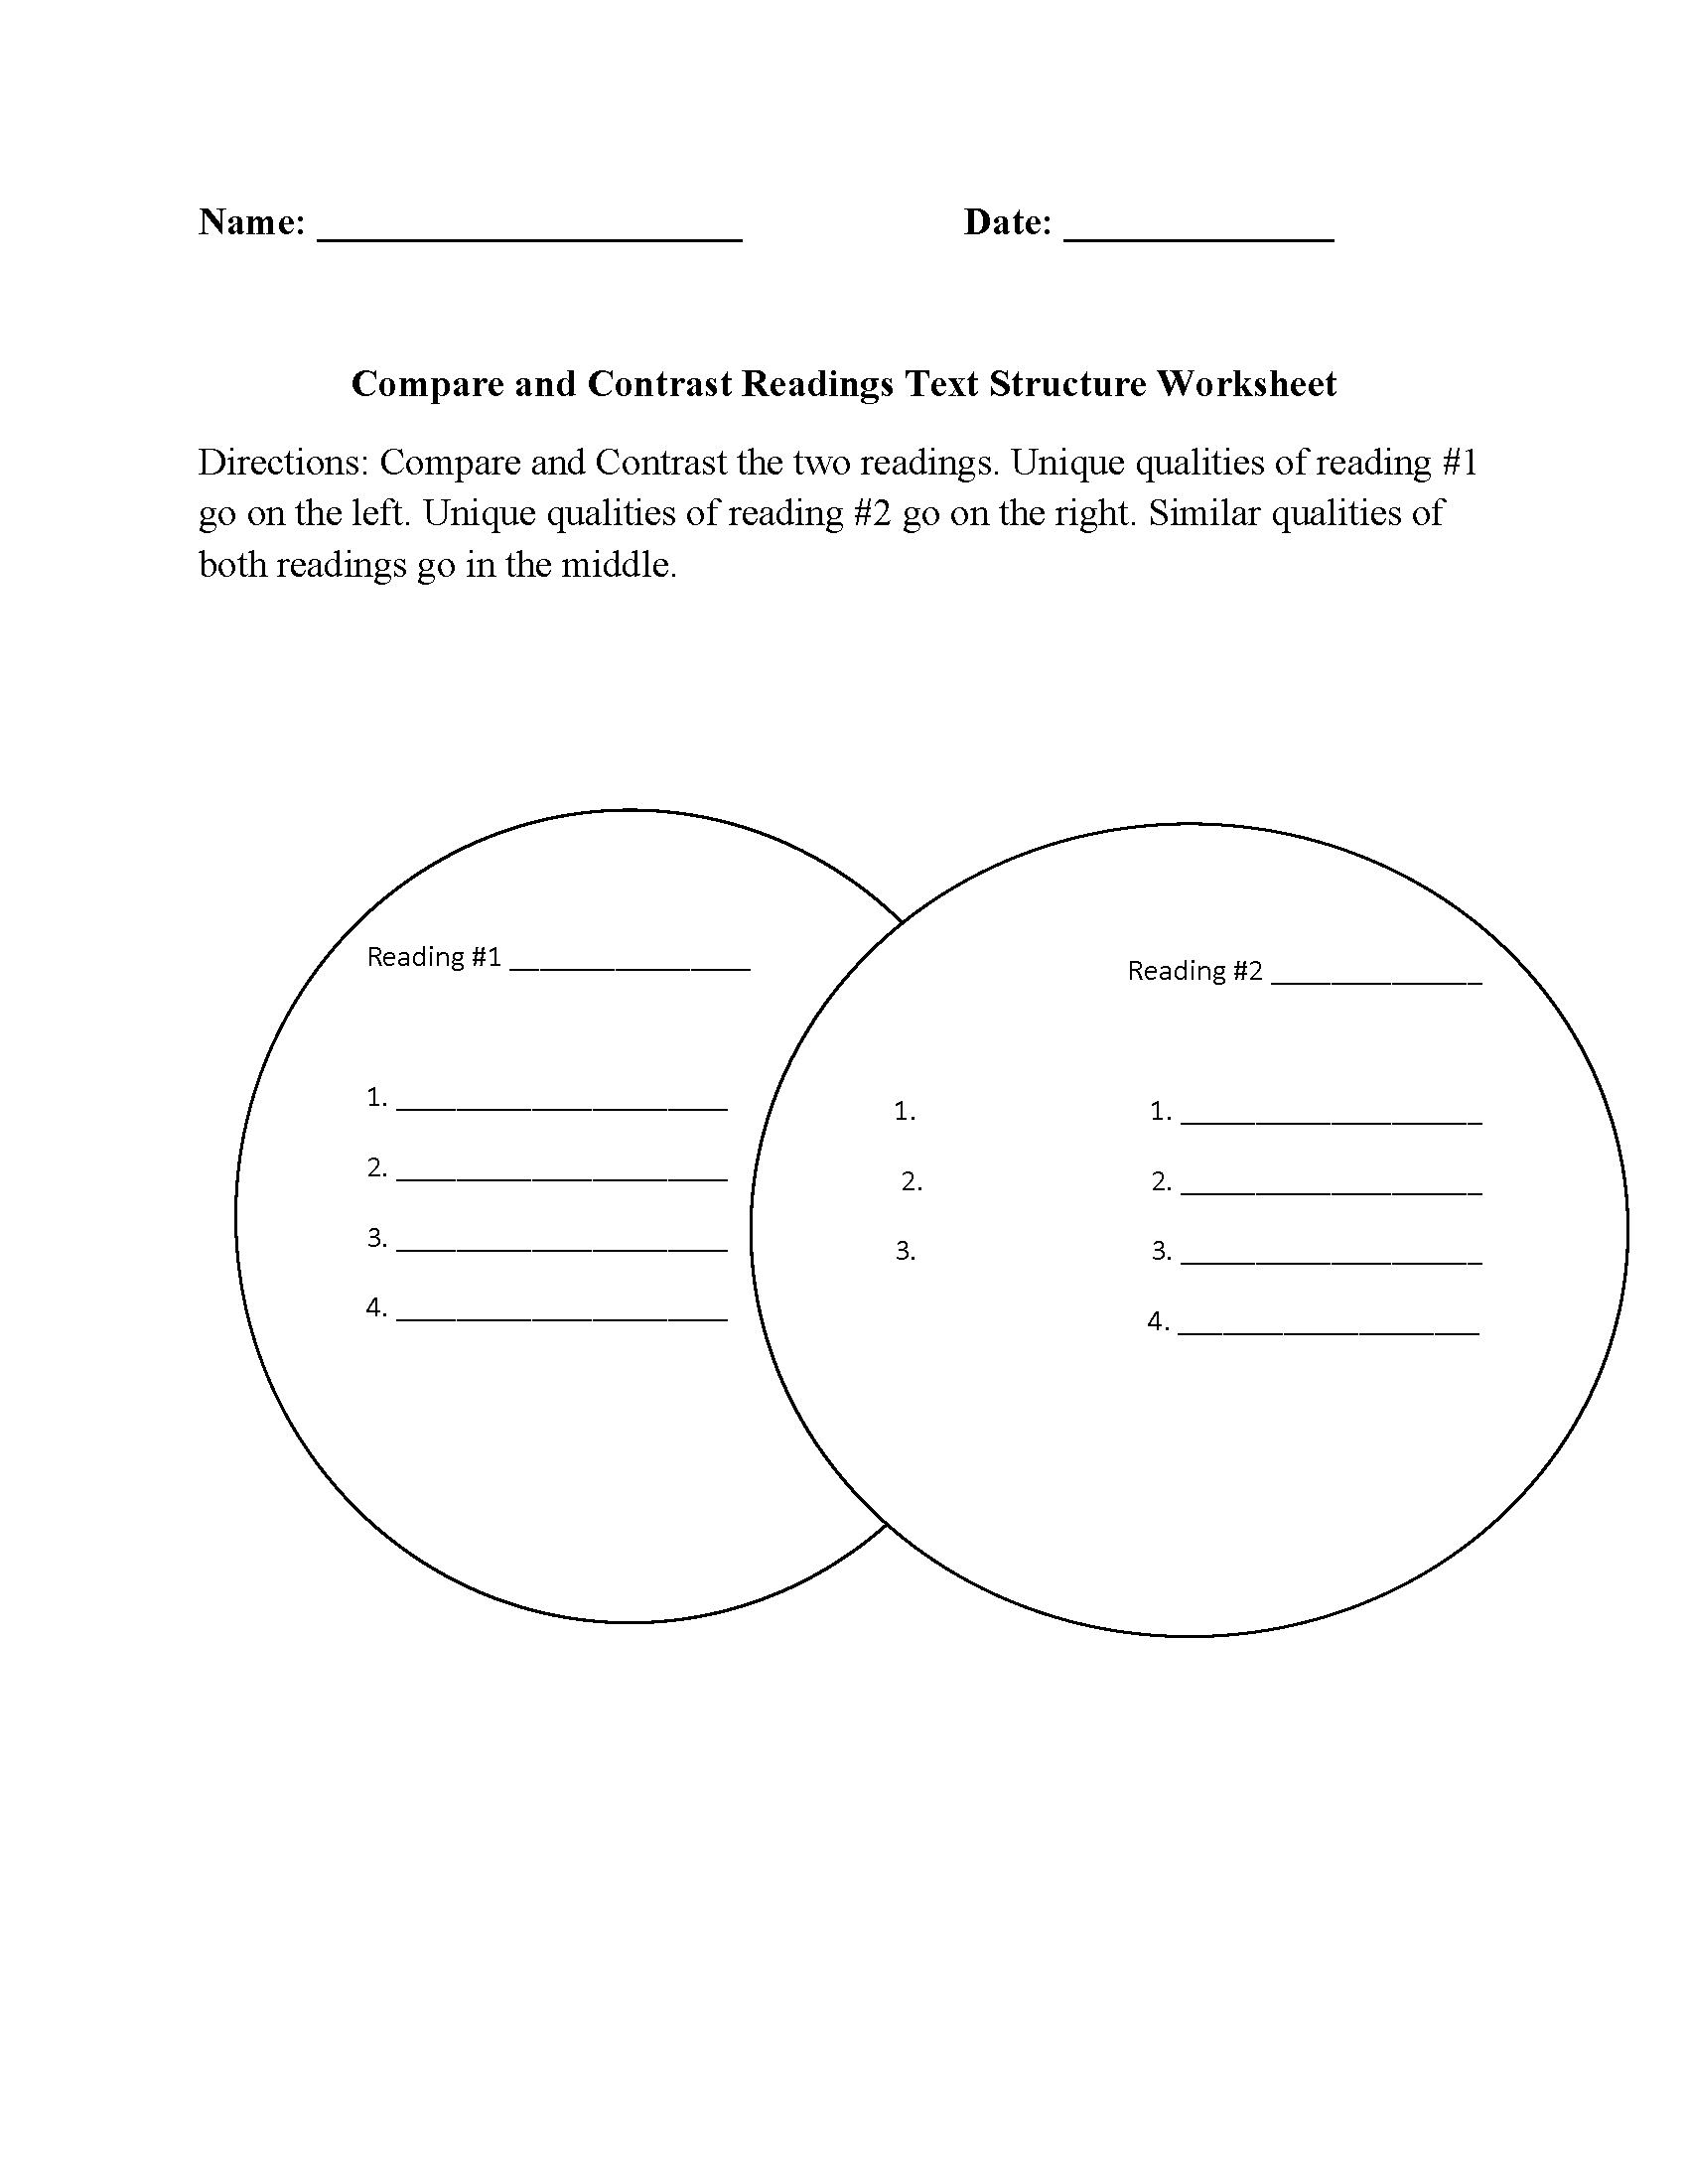 Text Structure Worksheets | Compare and Contrast Readings Text ...